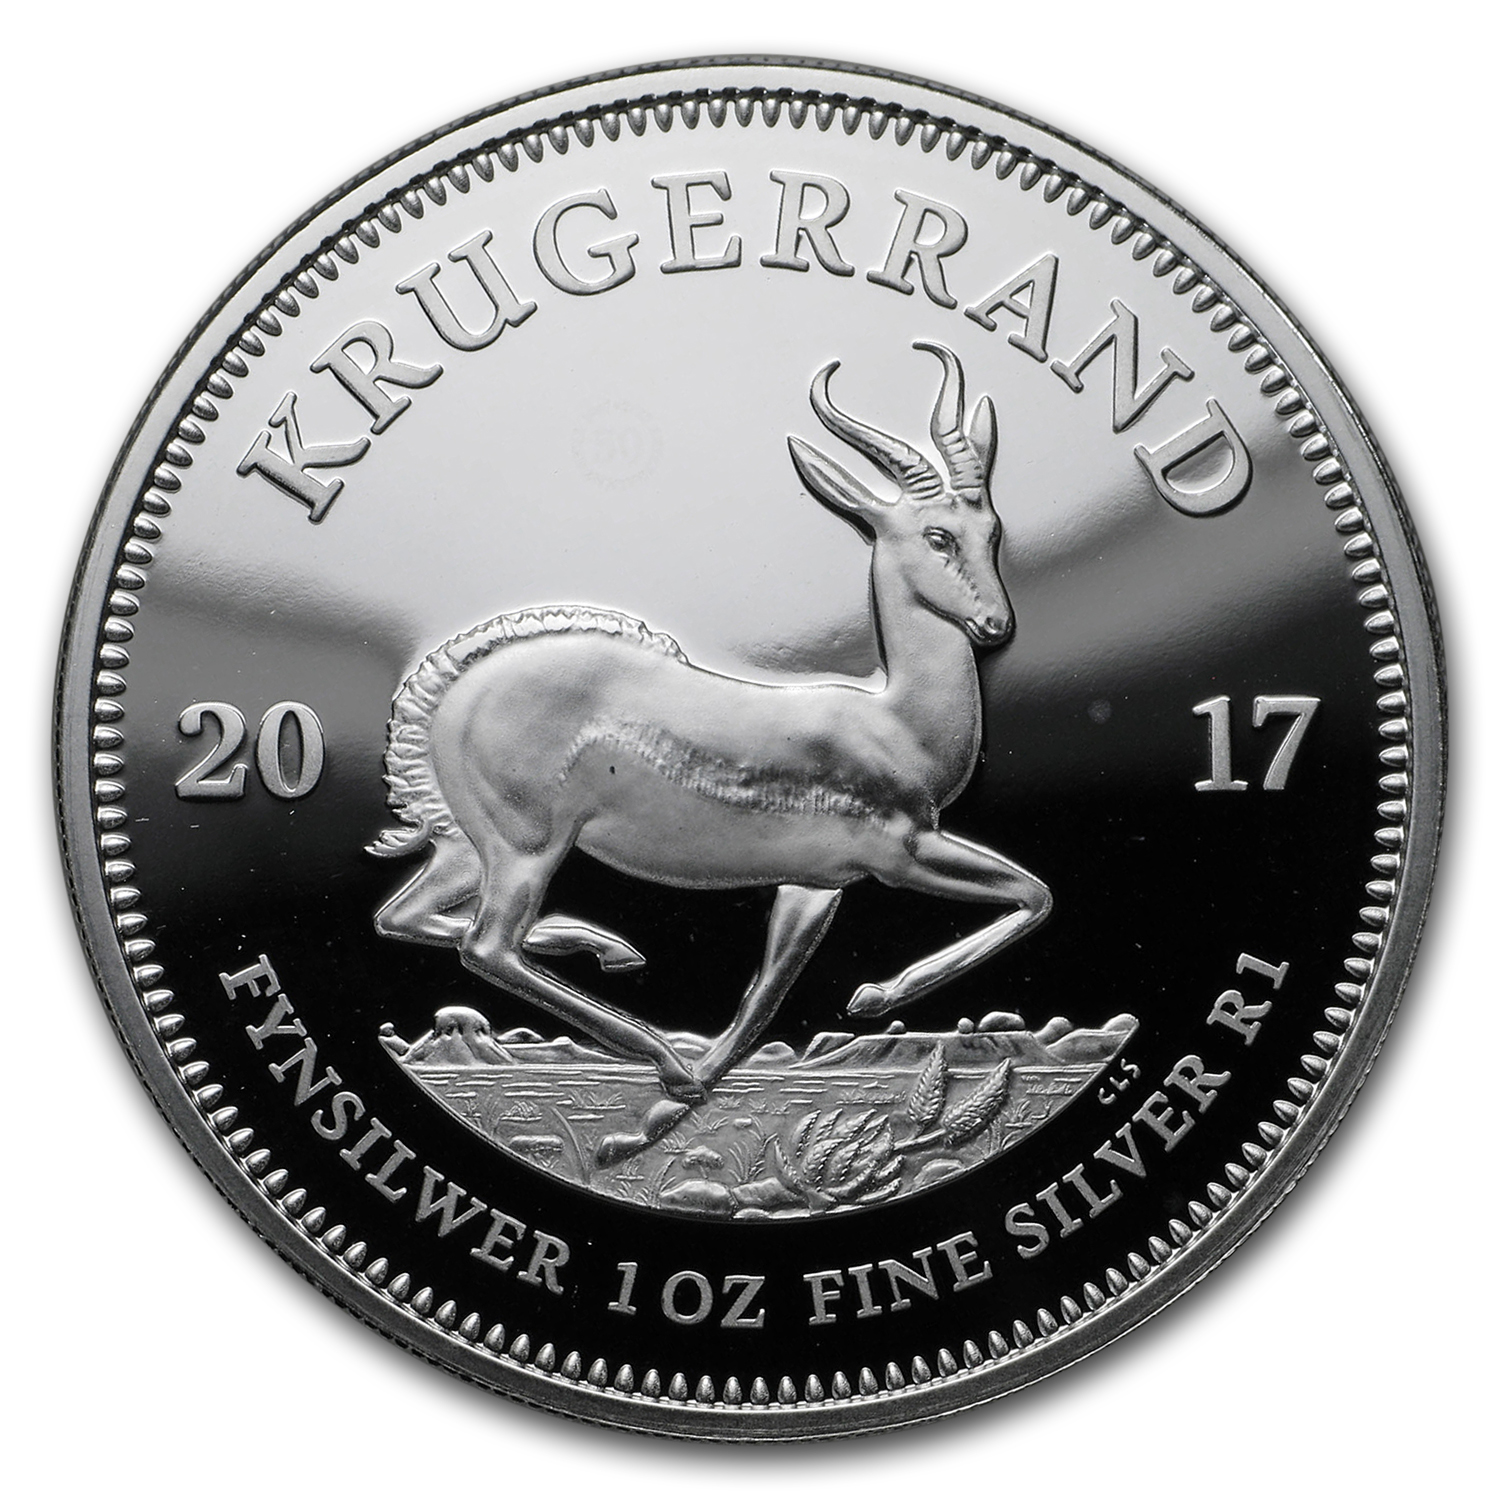 2017 South Africa 1 oz Silver Krugerrand Proof (Abrasions)